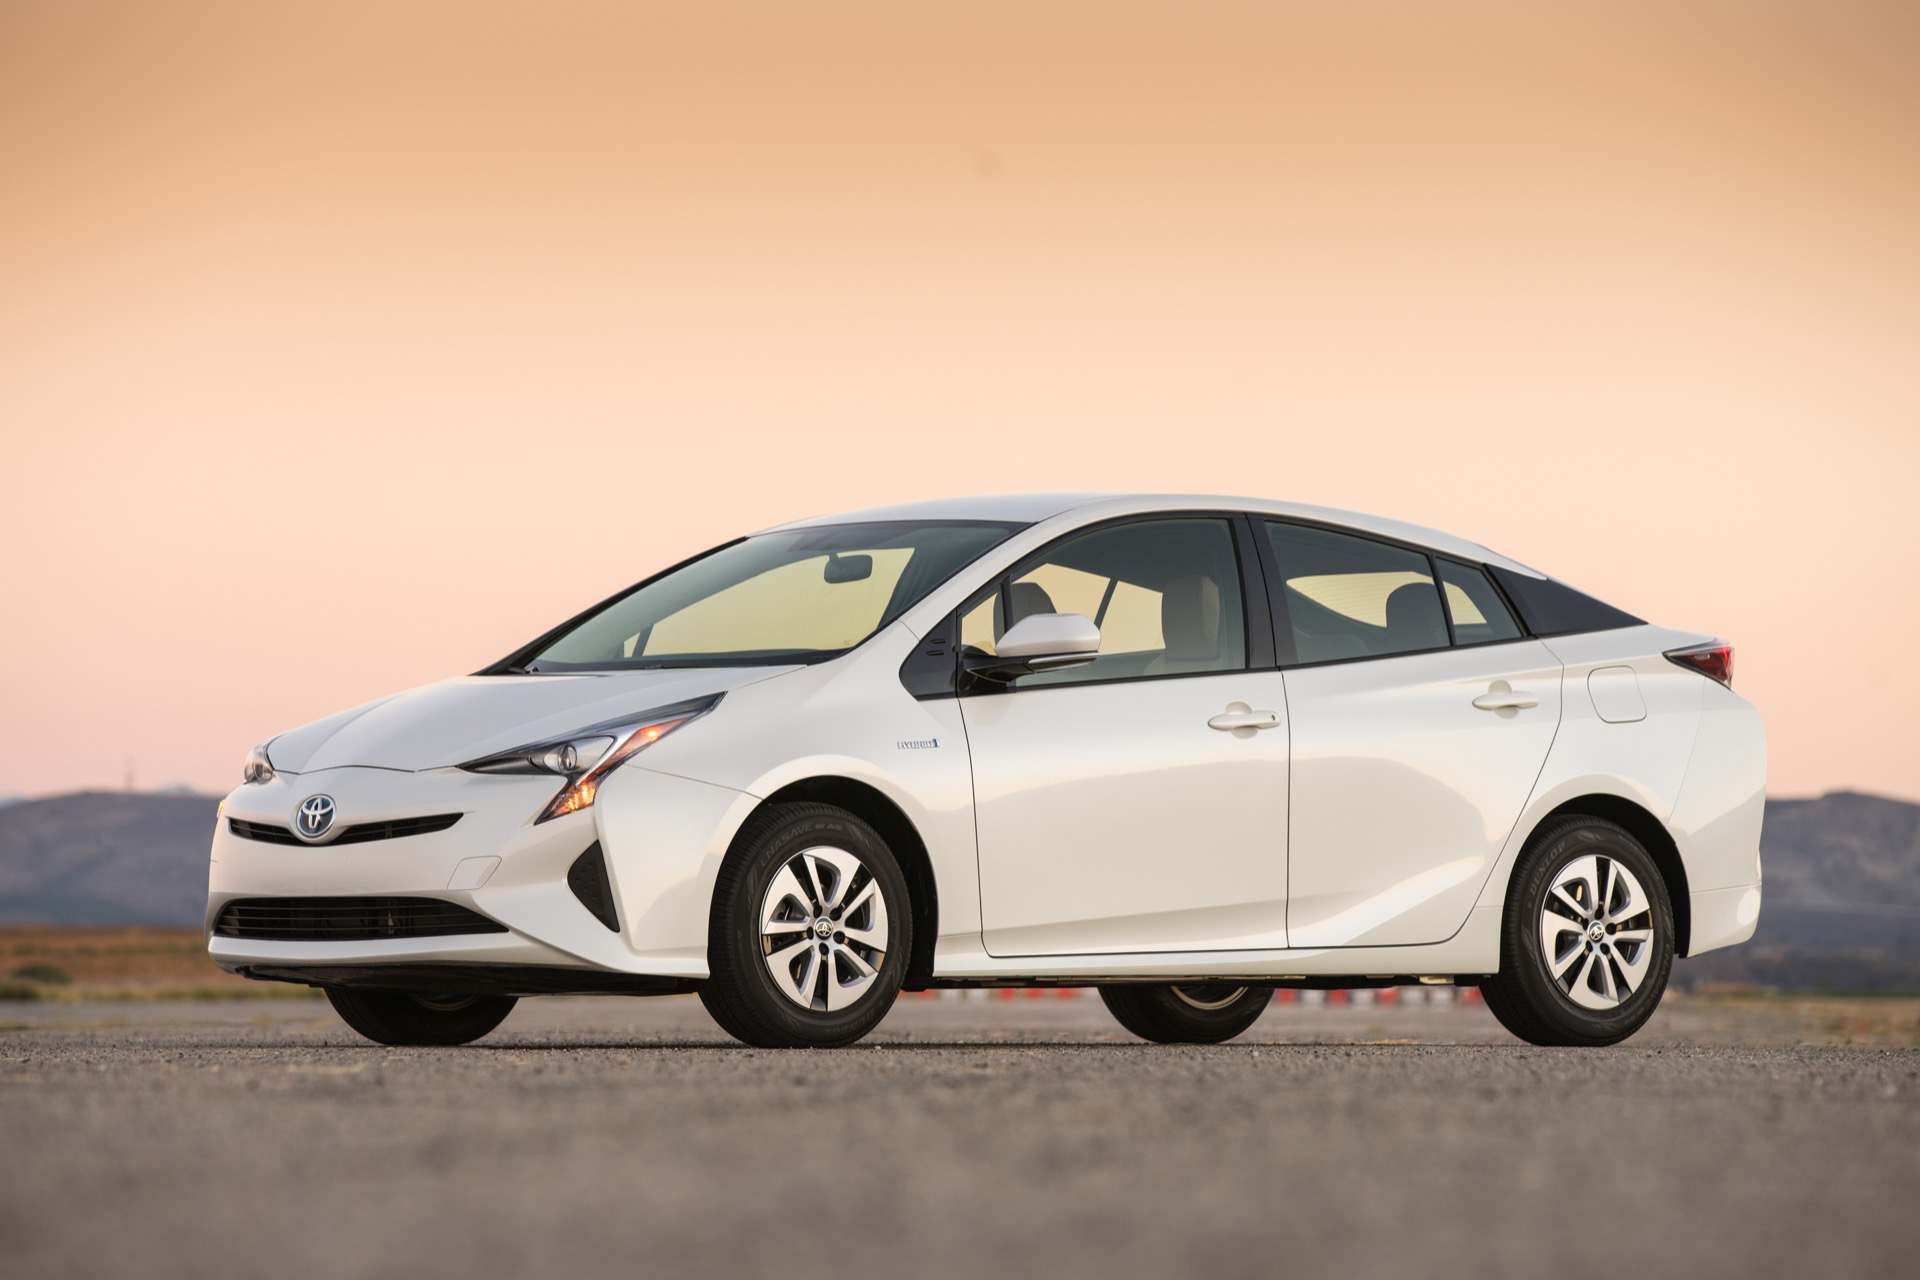 Toyota Prius 2016 Is The Most Fuel Efficient Hybrid Car Ever Built